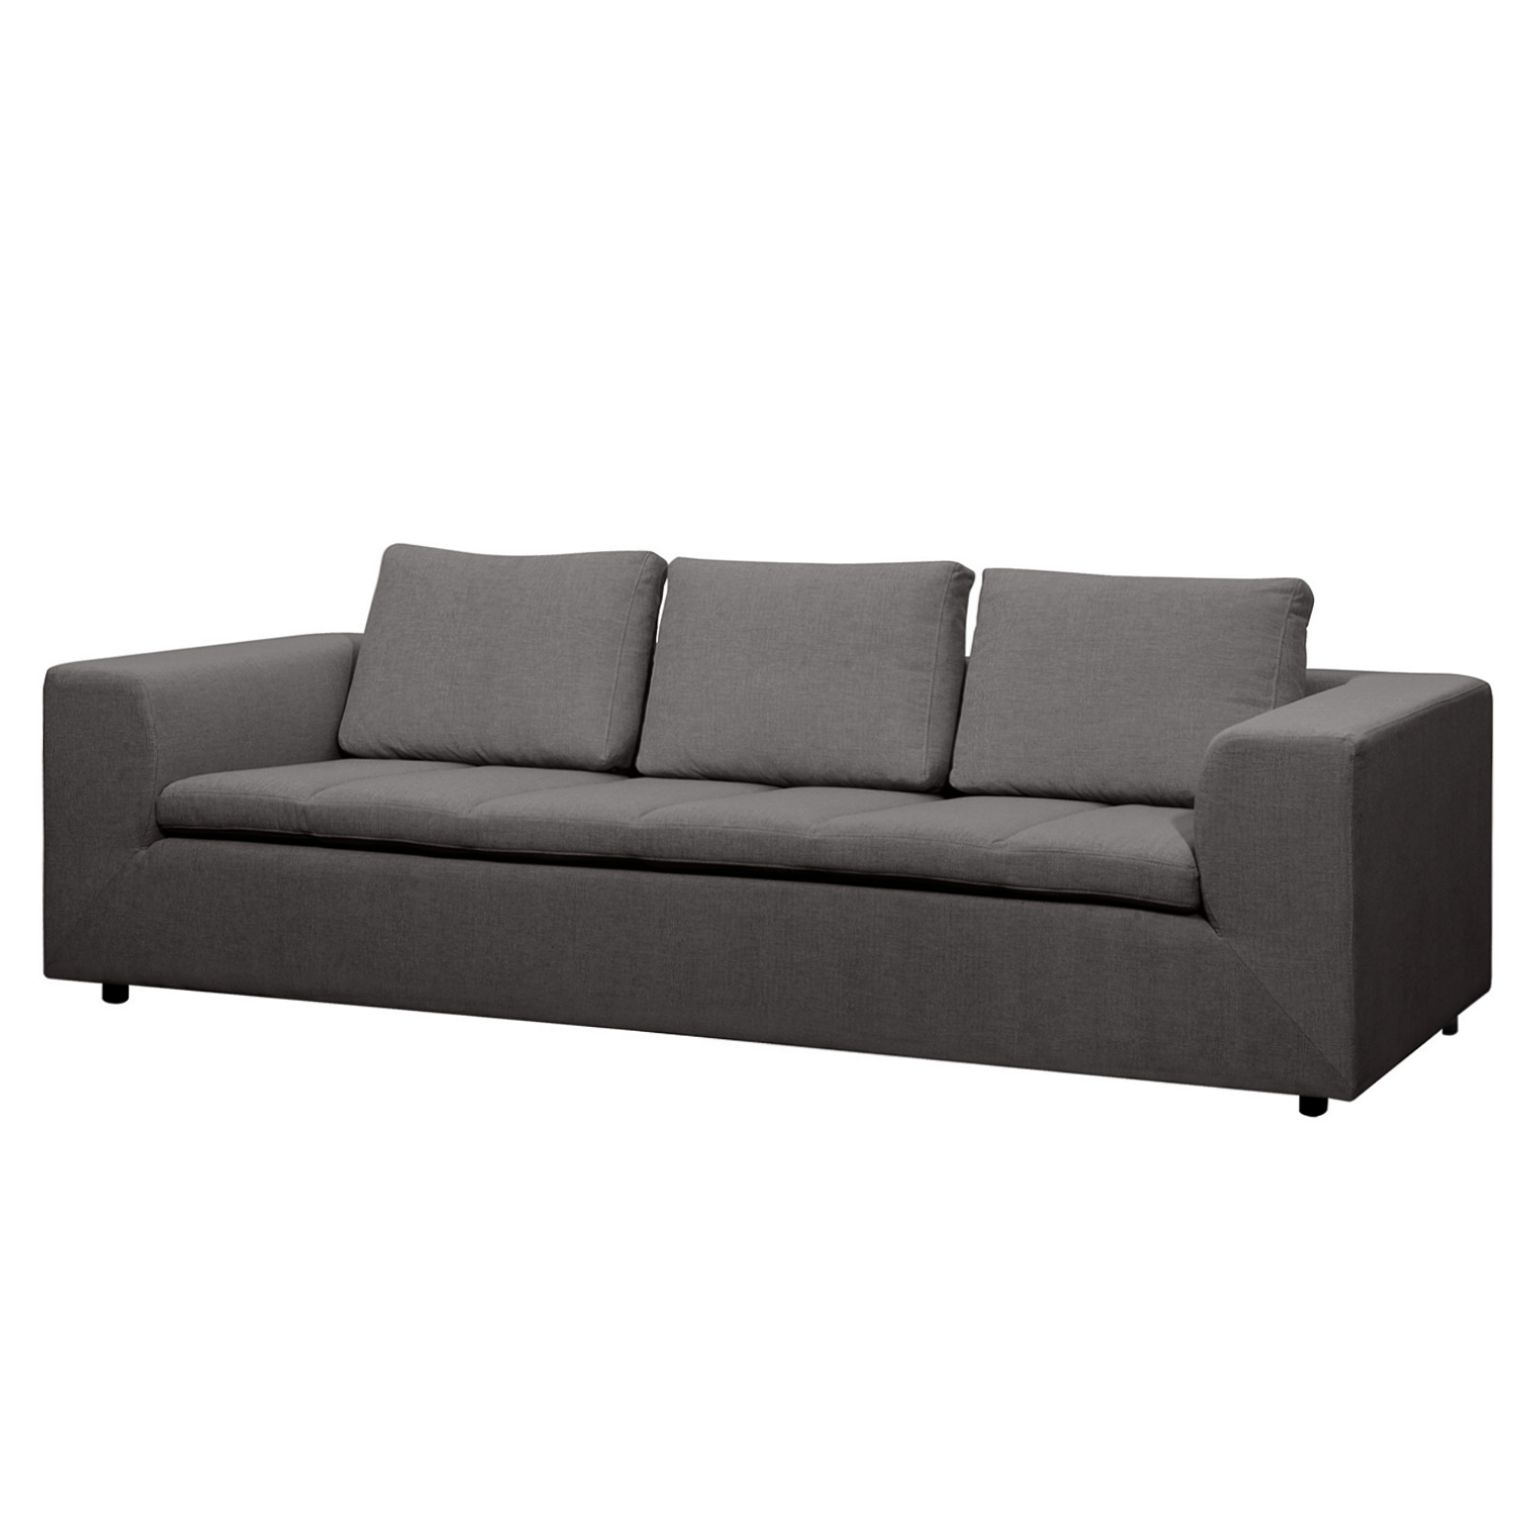 Sofa Brooklyn (3-Sitzer) Webstoff - Stoff Anda II Anthrazit